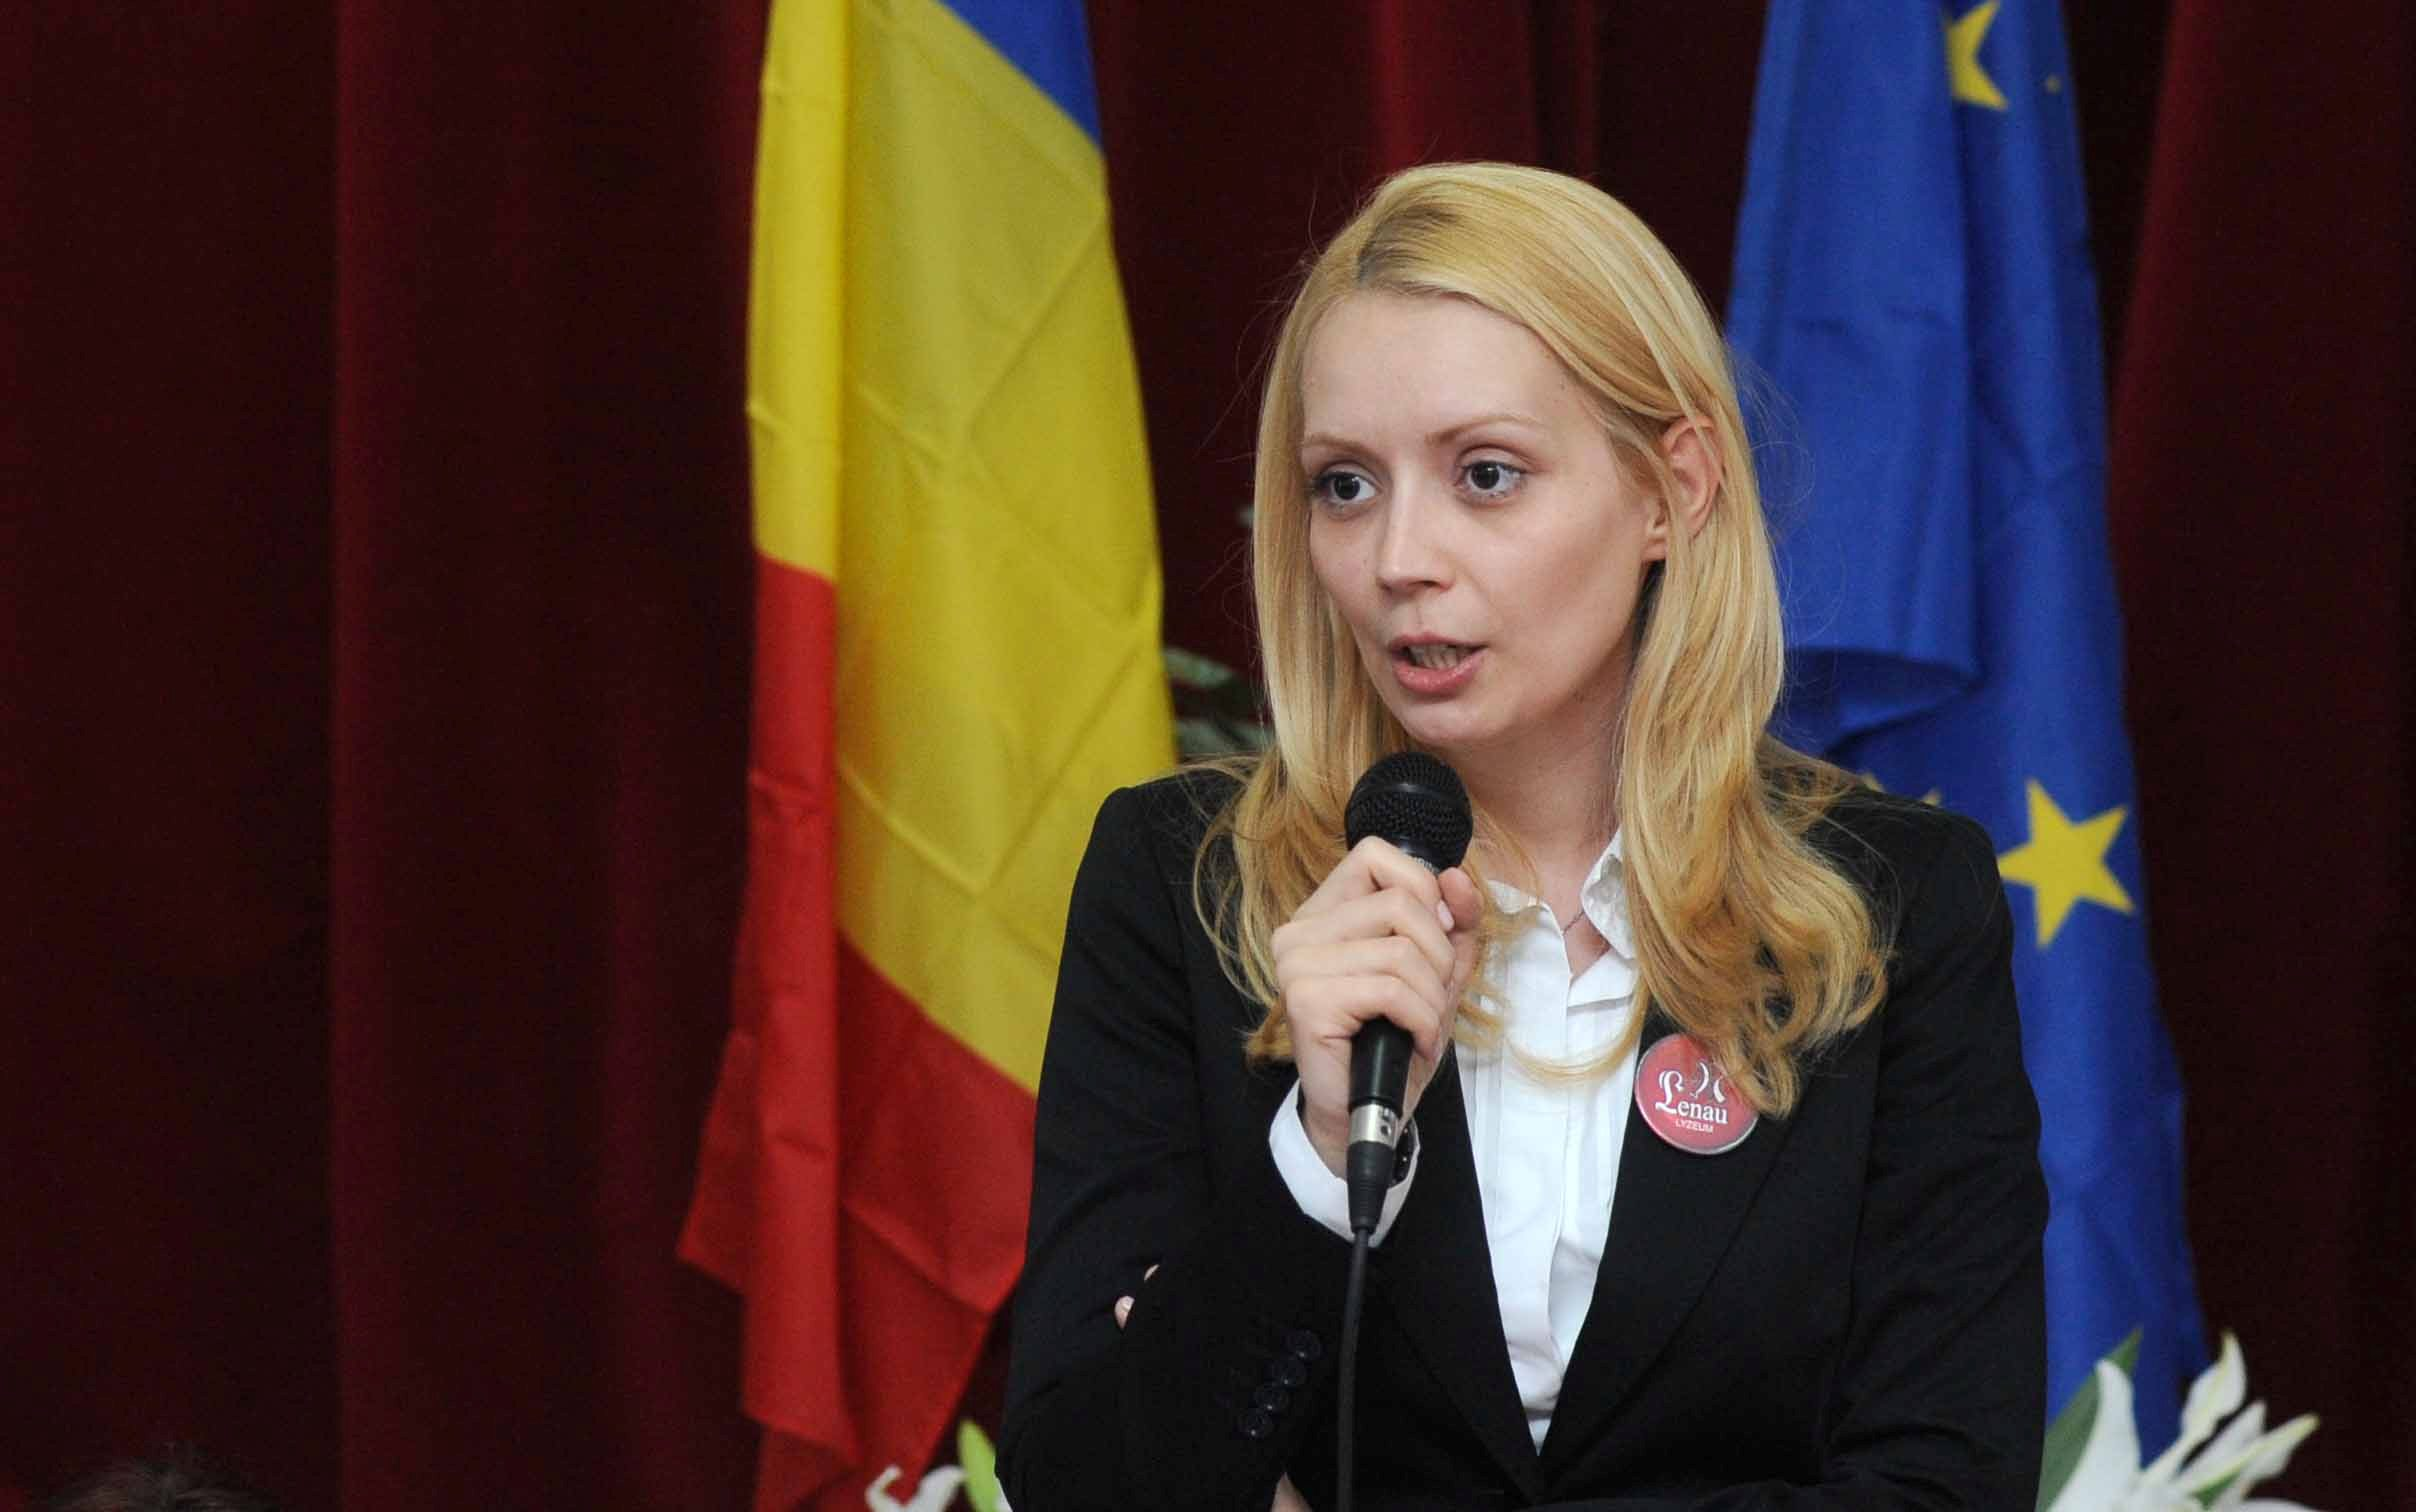 Romanian PM's wife is set on business